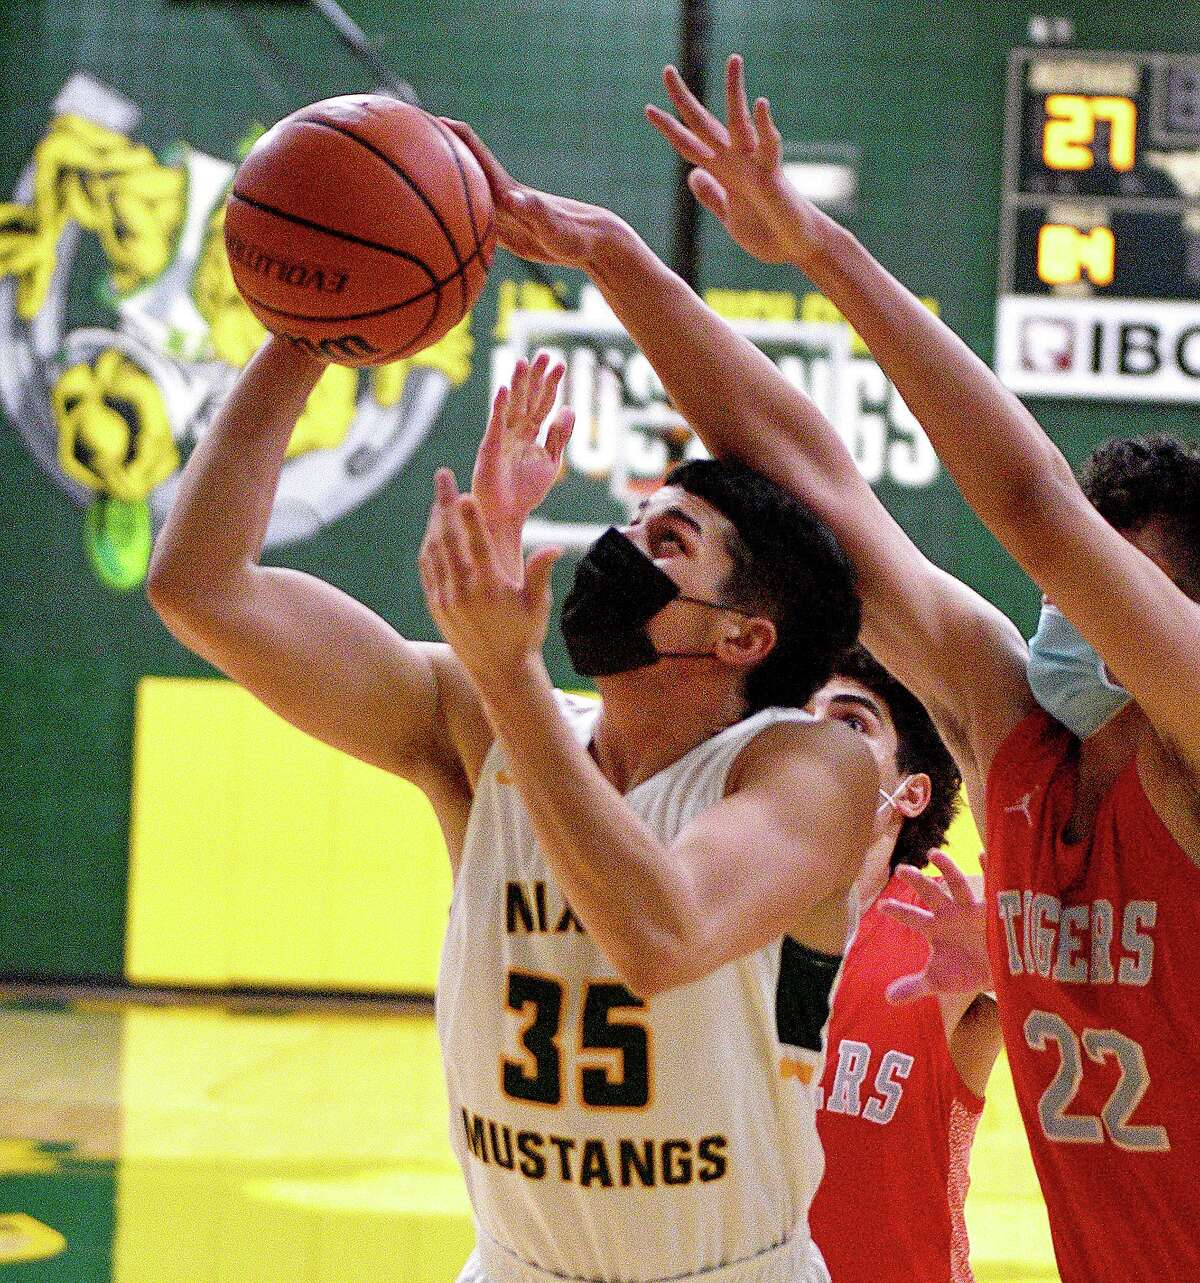 Bryan Garcia and the Nixon Mustangs are set to visit LBJ on Tuesday.